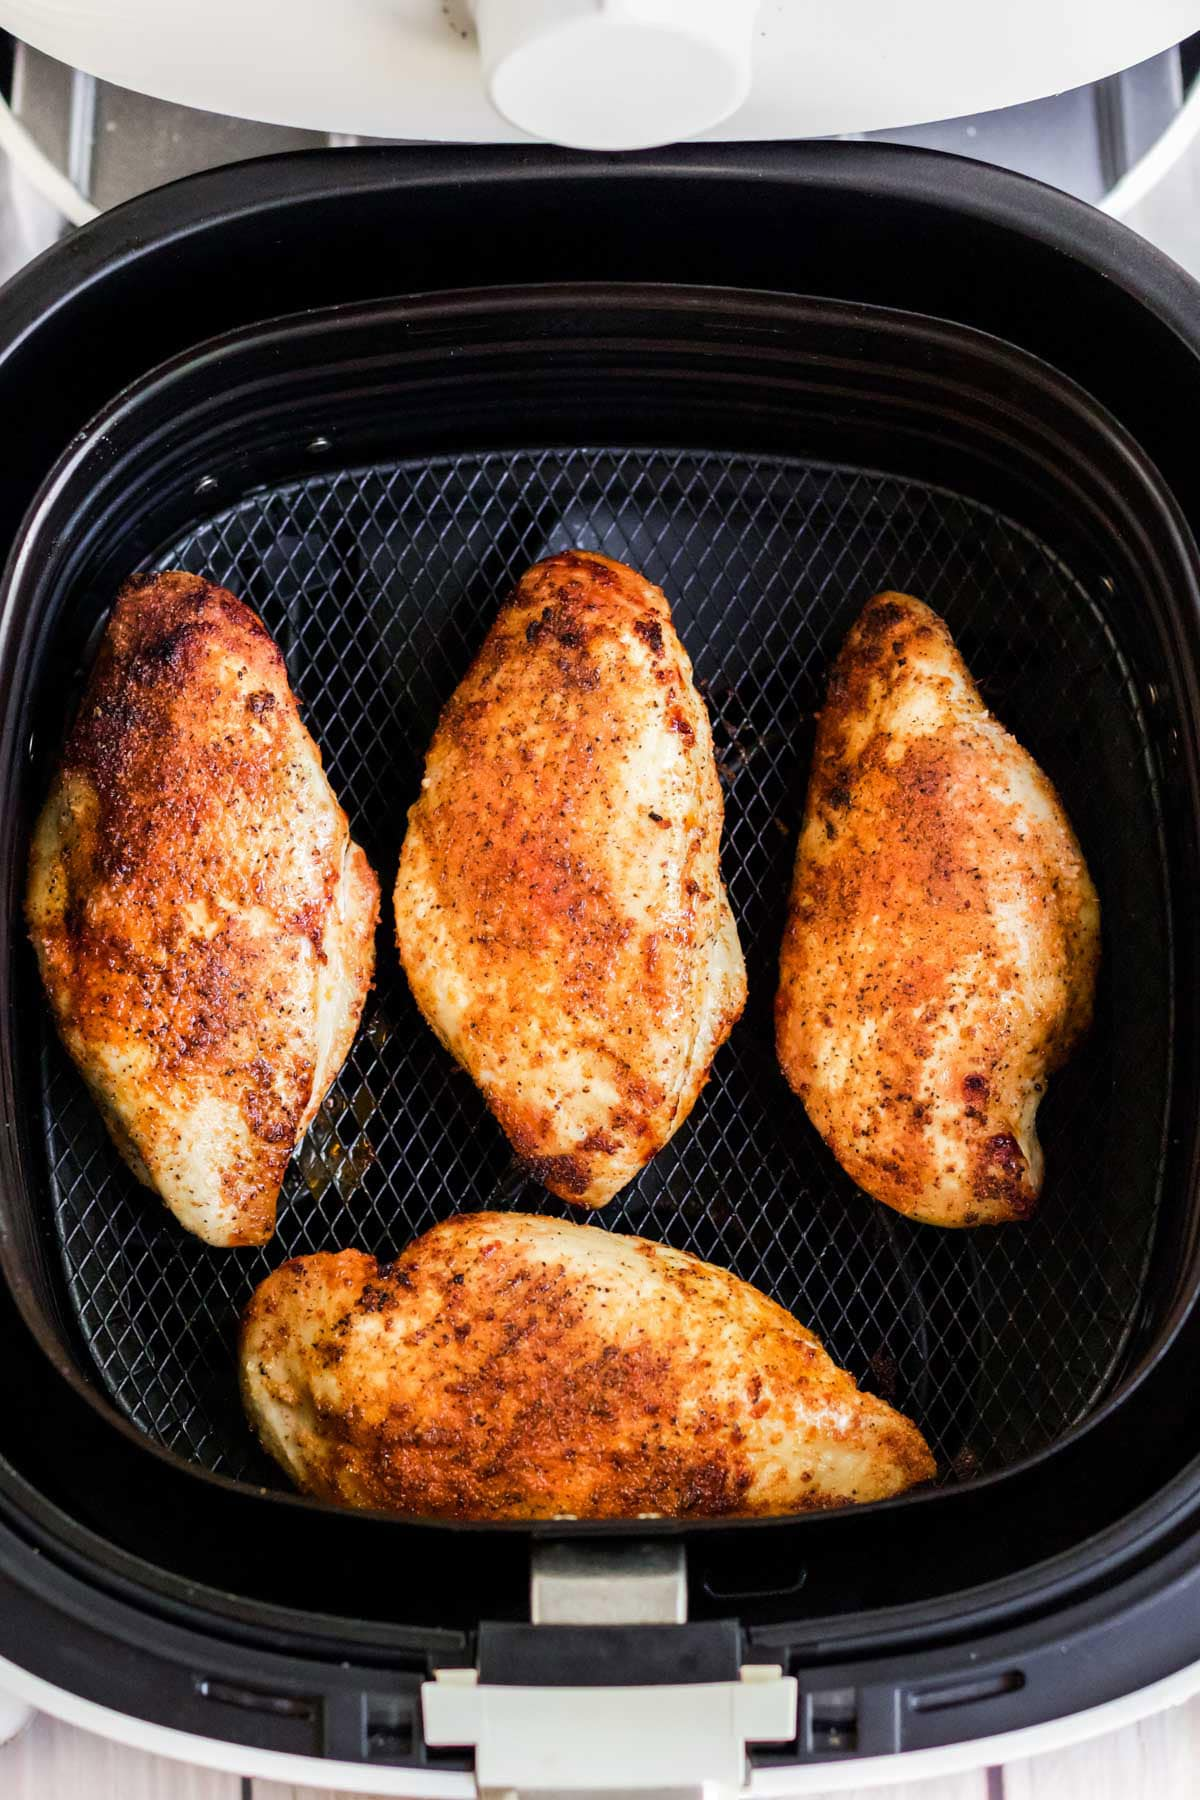 chicken breasts cooked in the air fryer